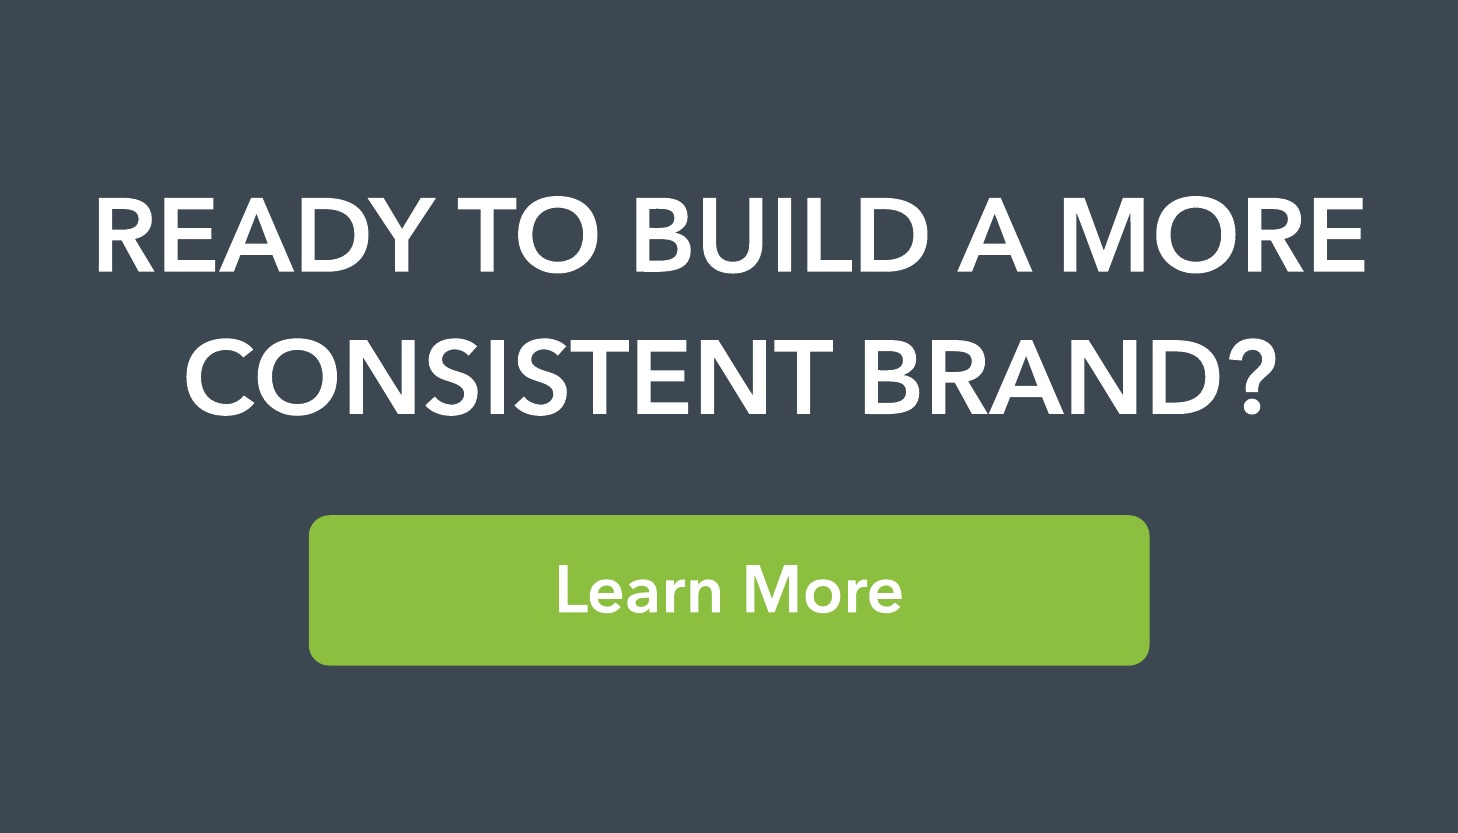 ready to build a more consistent brand?